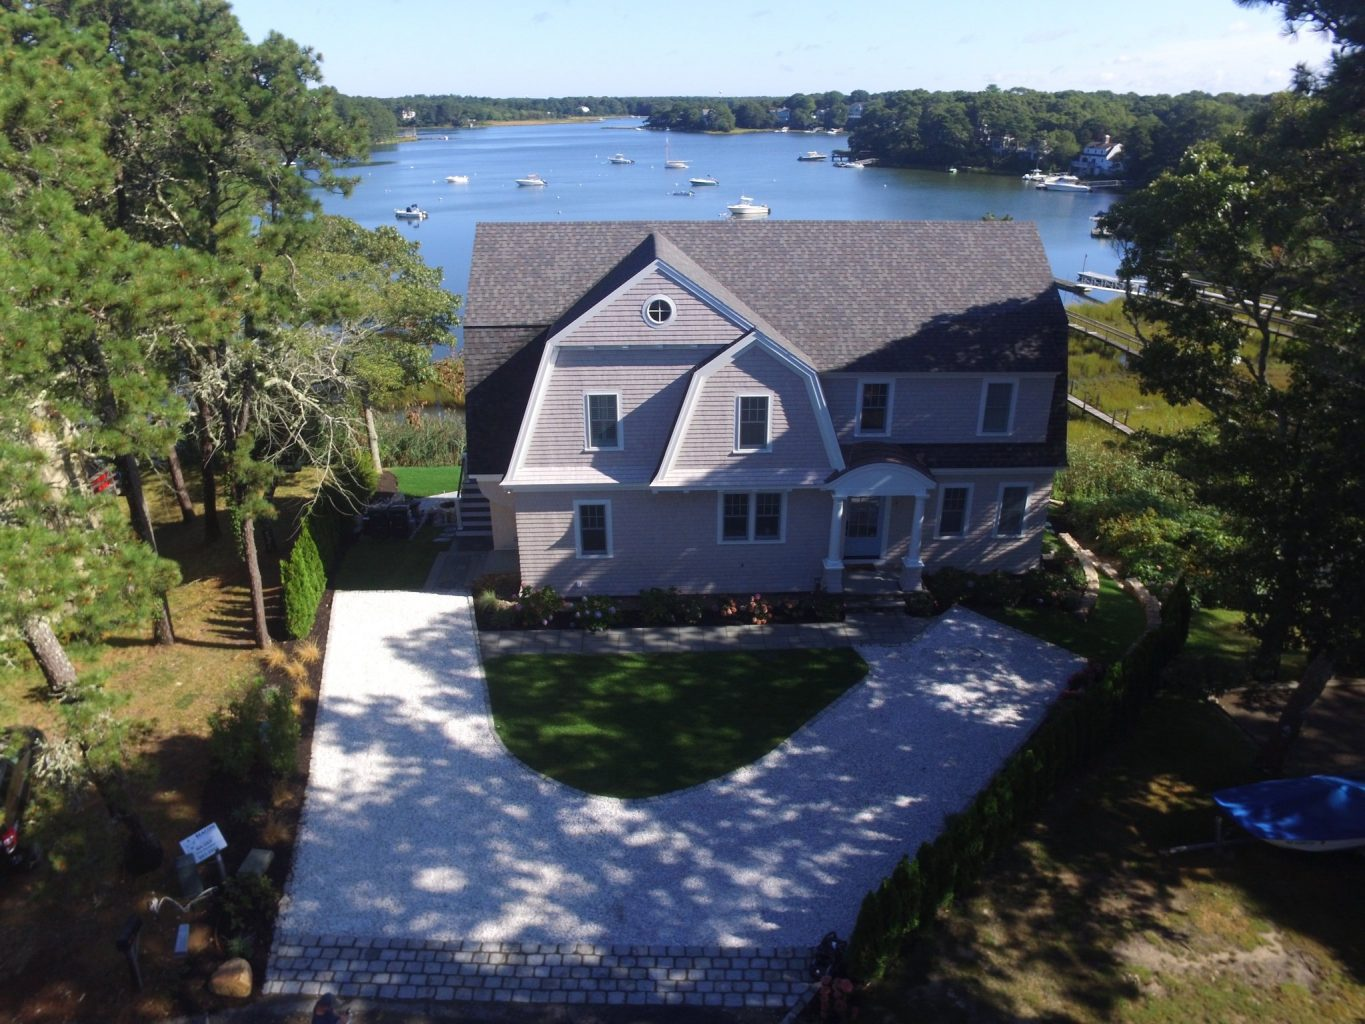 Arial view of a large home with a lake in the background